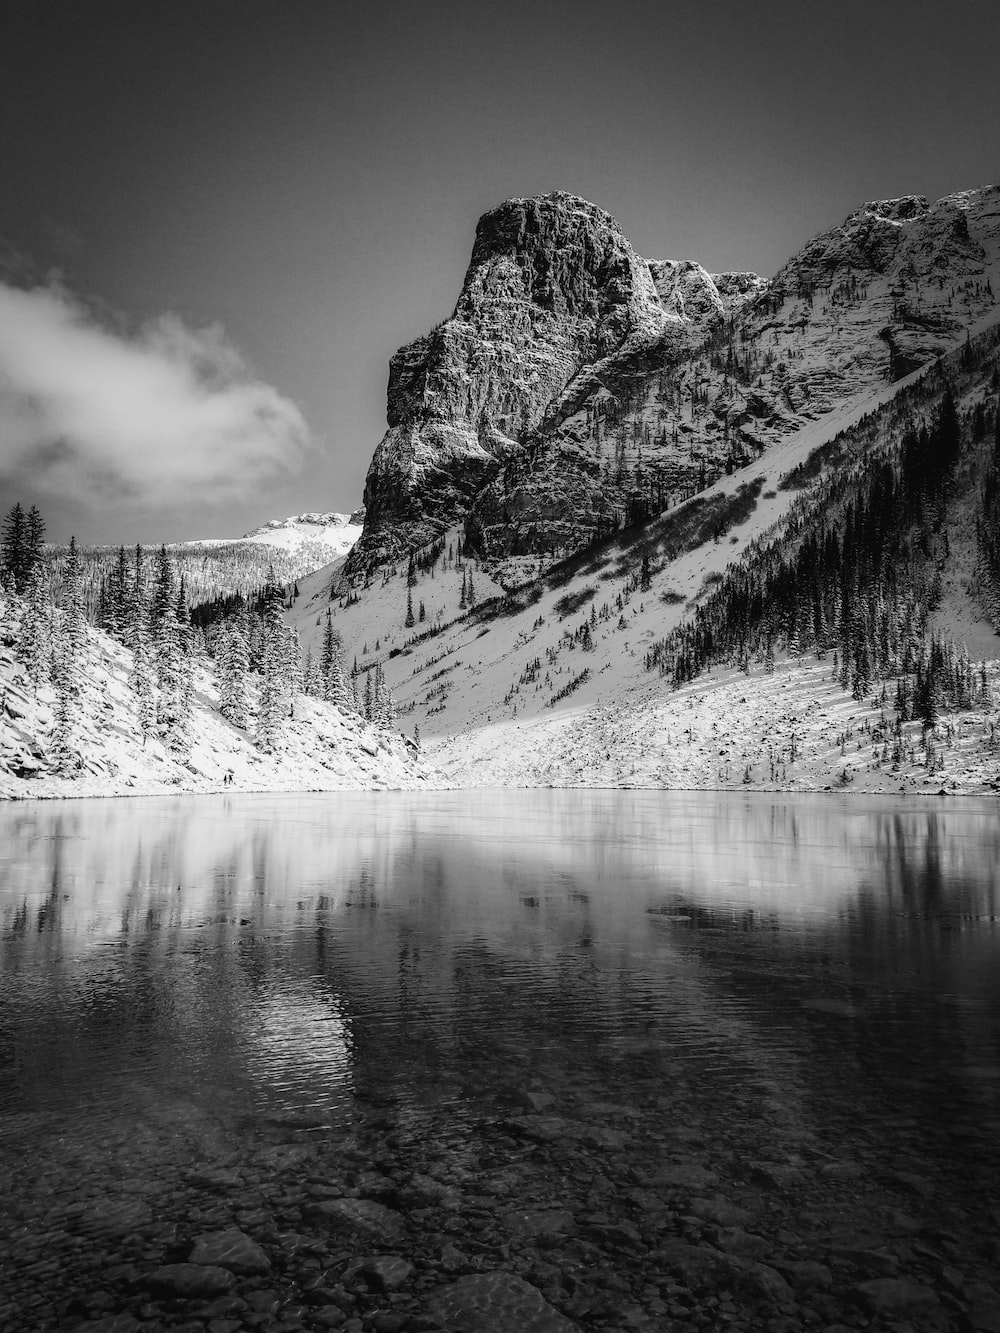 grayscale photography of calm body of water by mountains